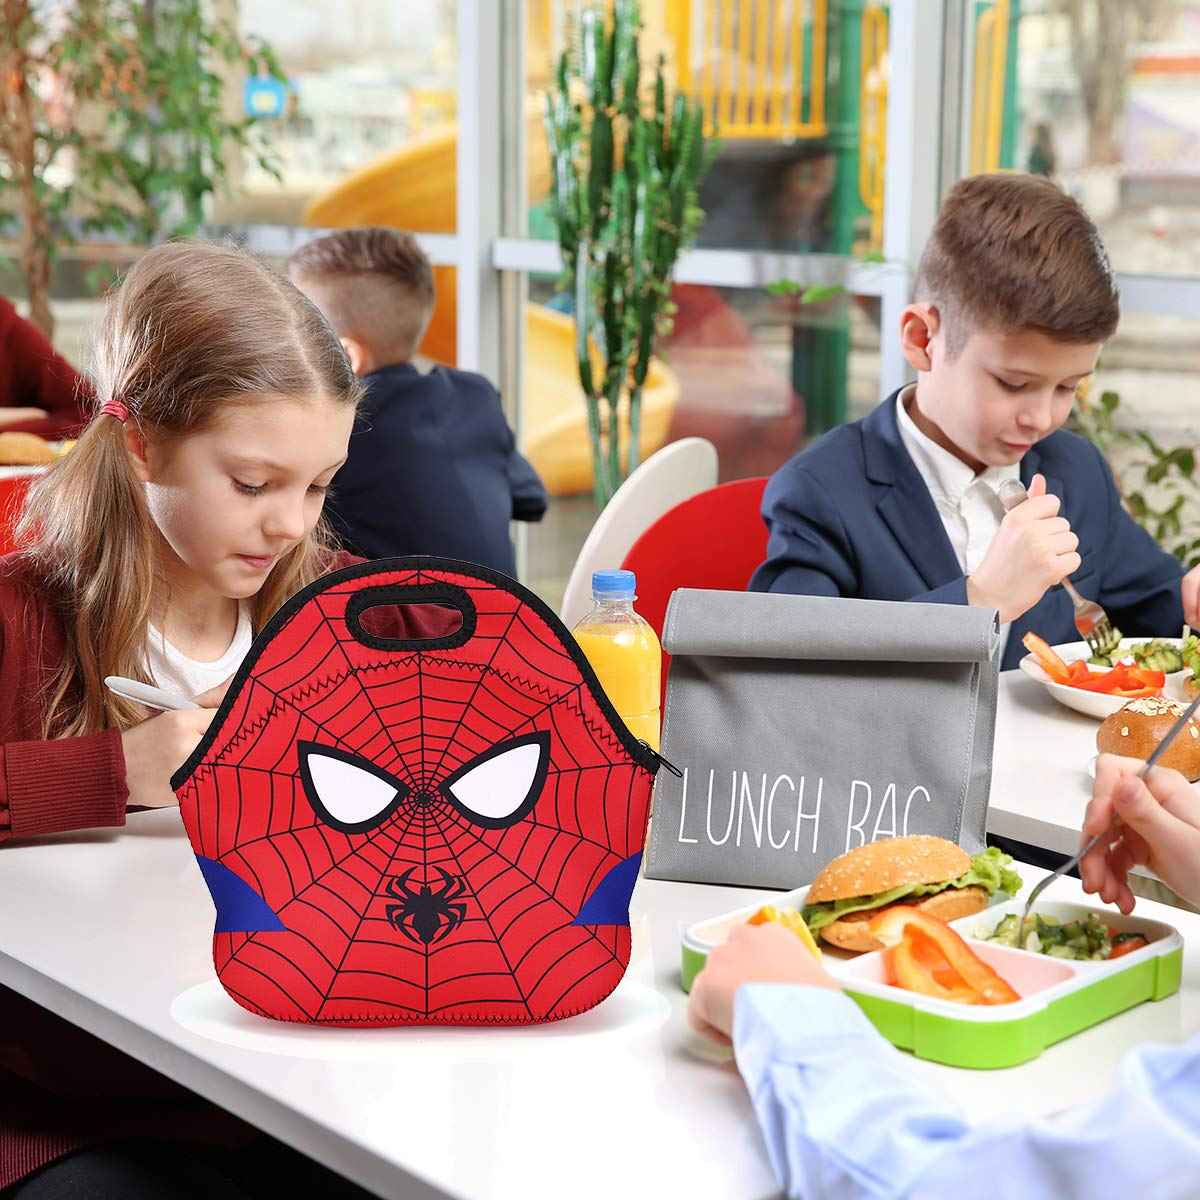 RecooTic Kids Spiderman Lunch Bag Waterproof Insulated Neoprene lunchbox Lunch Tote Bag for School Work Office